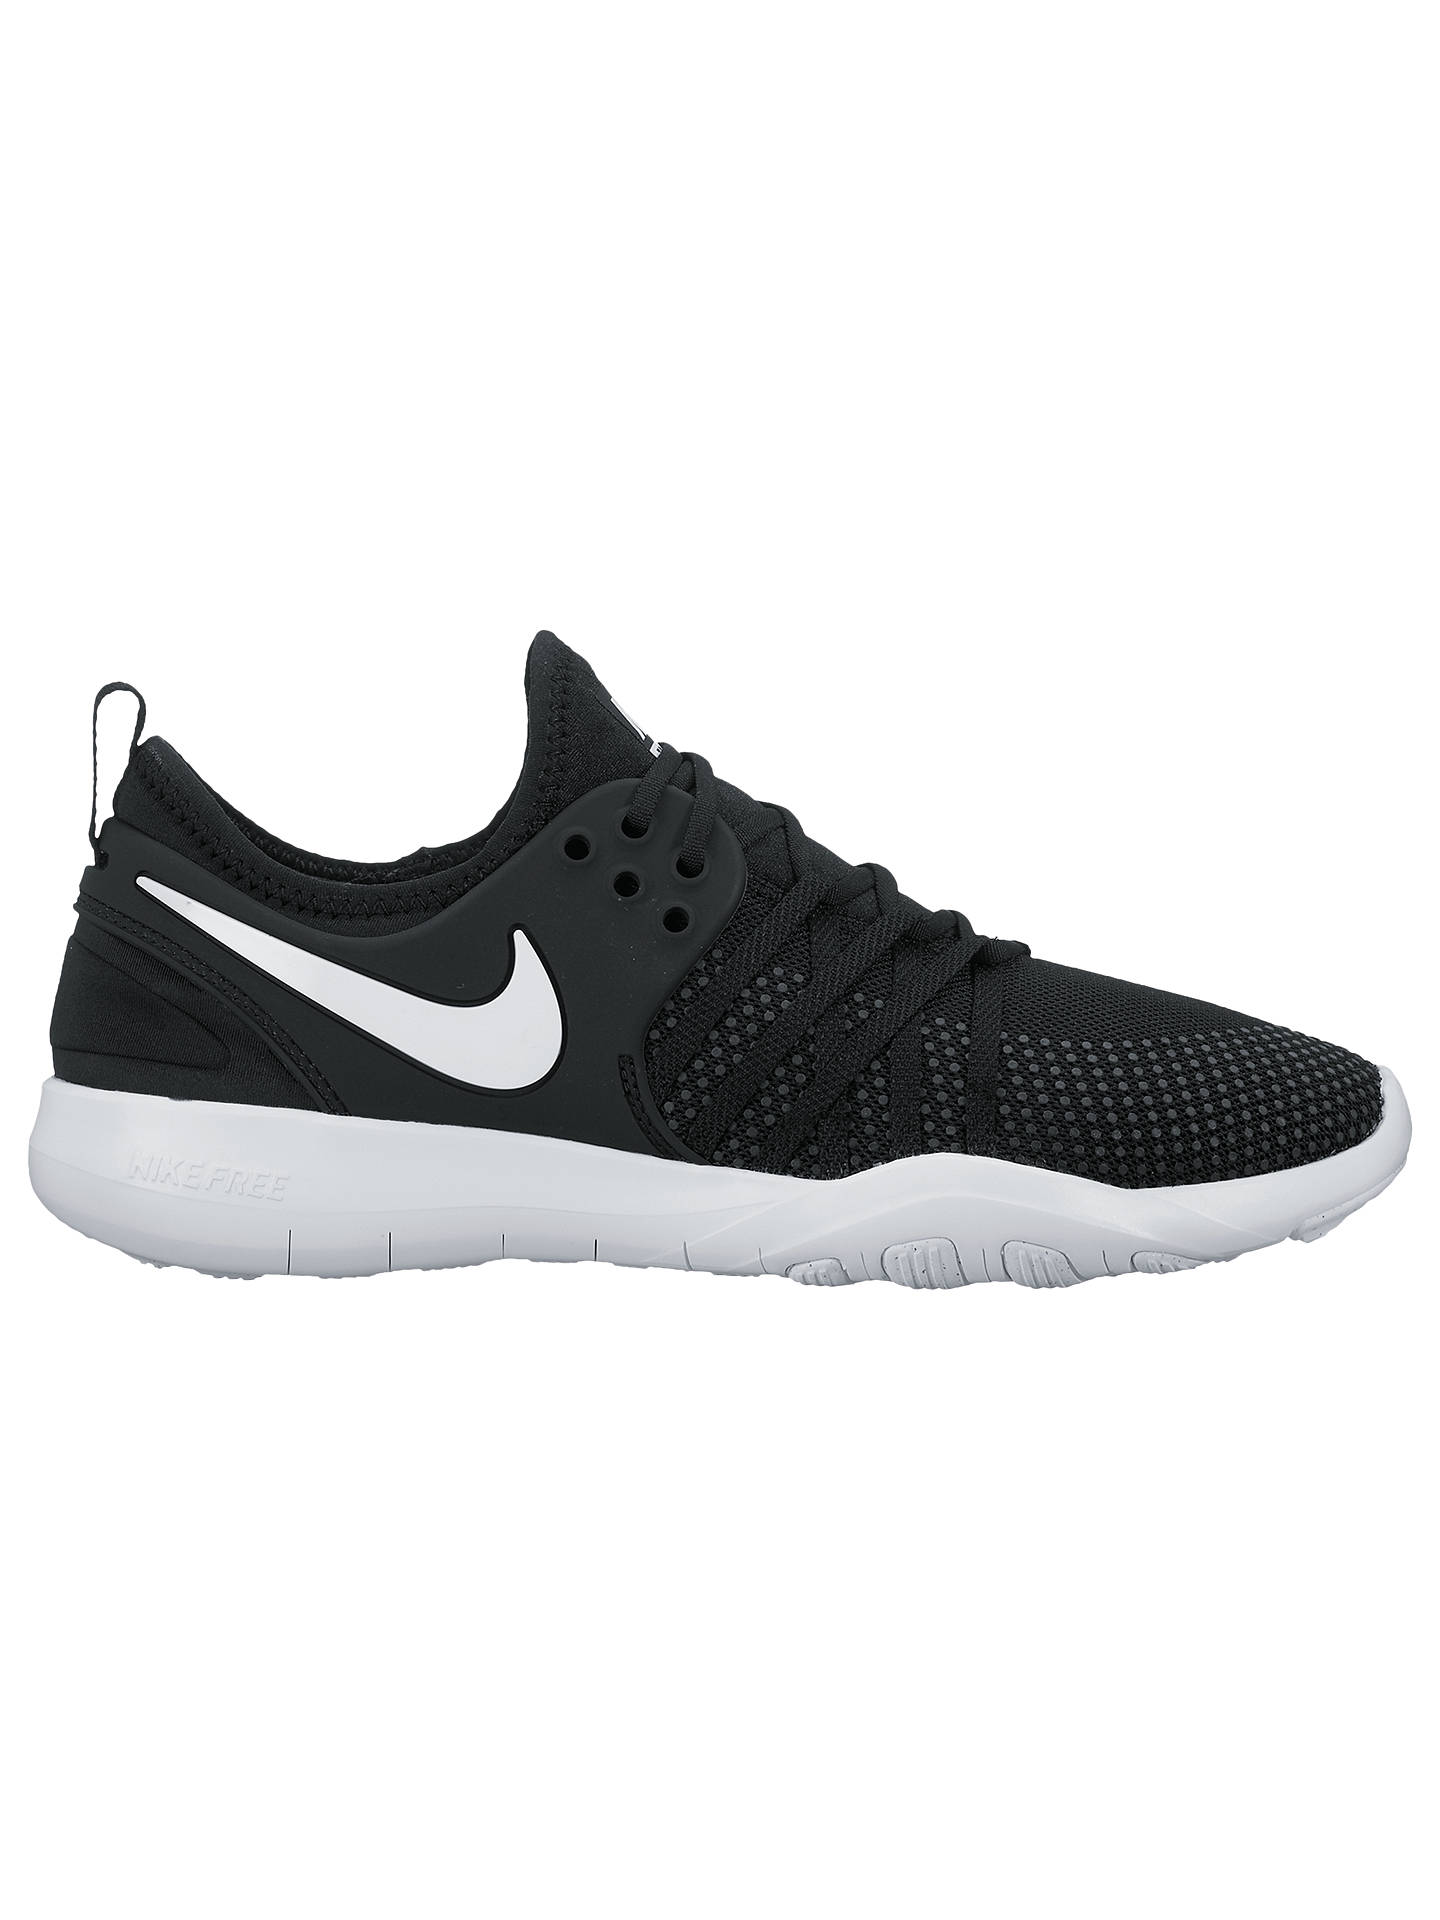 Hypertr Nike Free Trainer Men Clearance